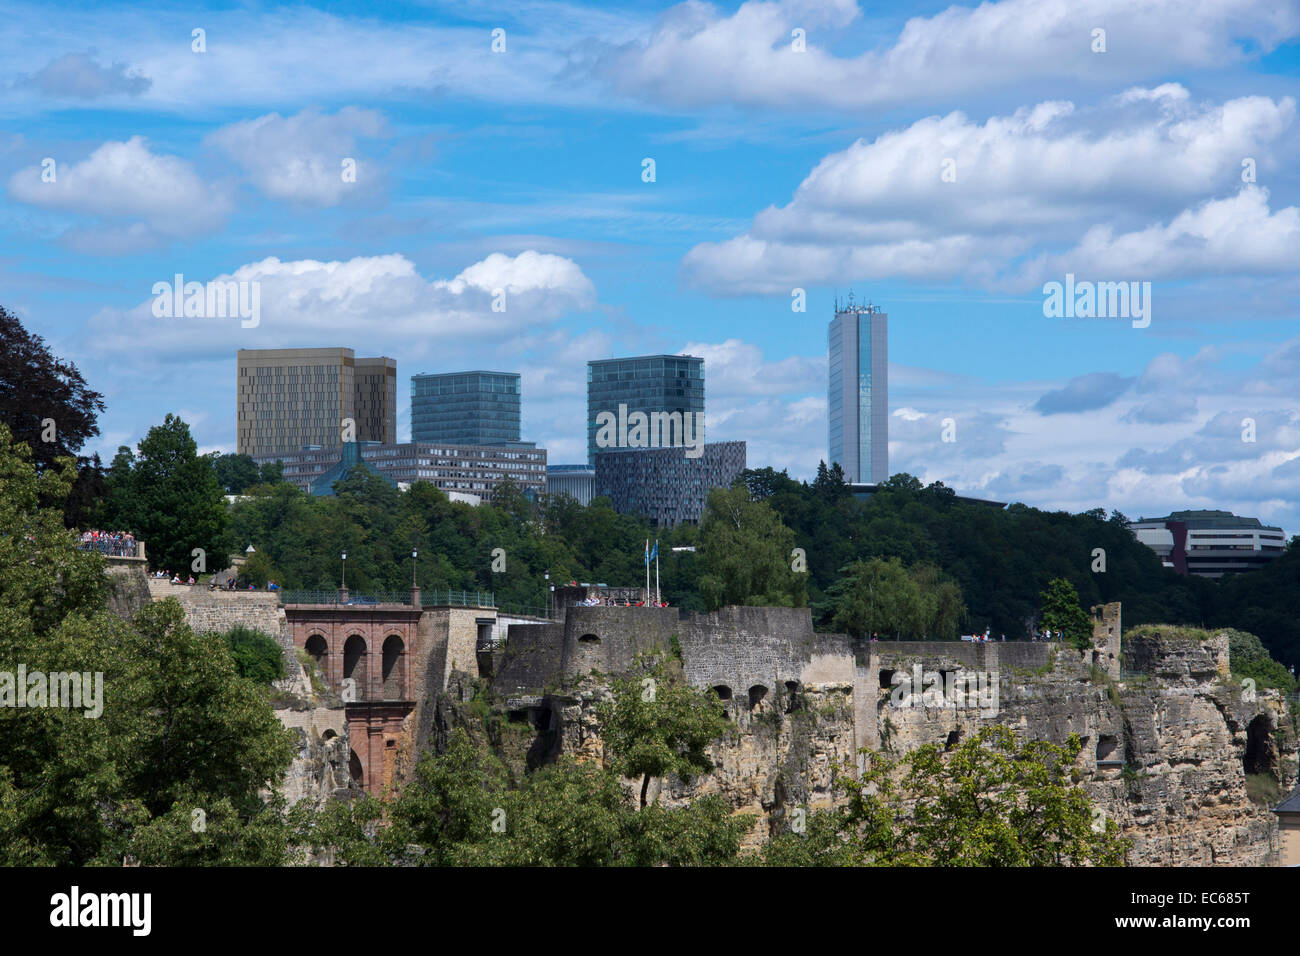 View of the Bock Casemates and the Kirchberg district, Luxembourg City, Luxembourg, Europe - Stock Image